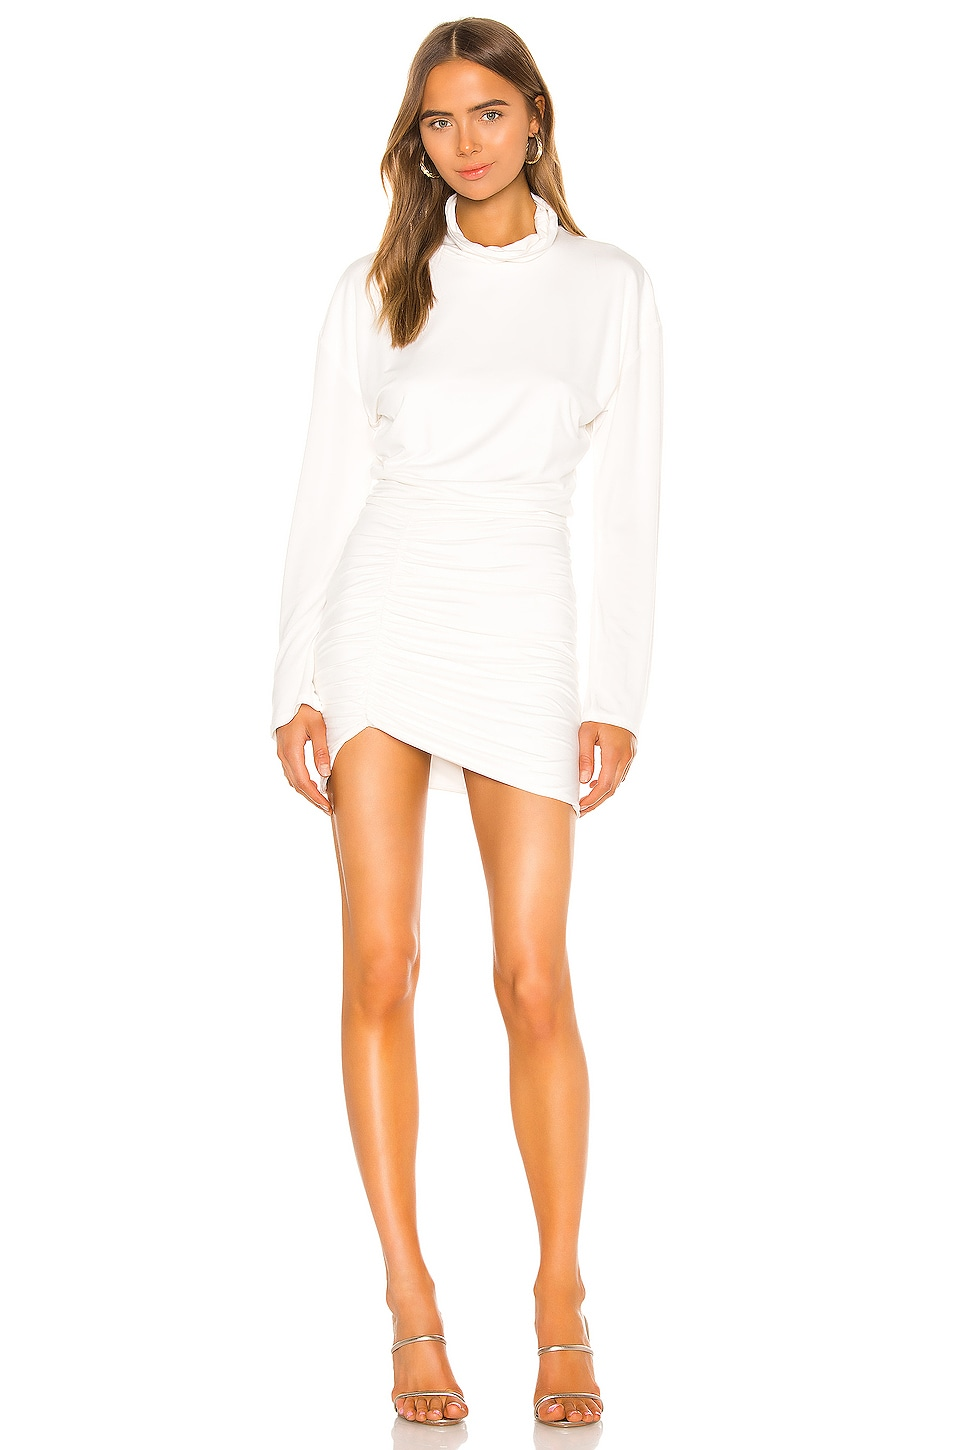 Lovers + Friends Ivana Mini Dress in White